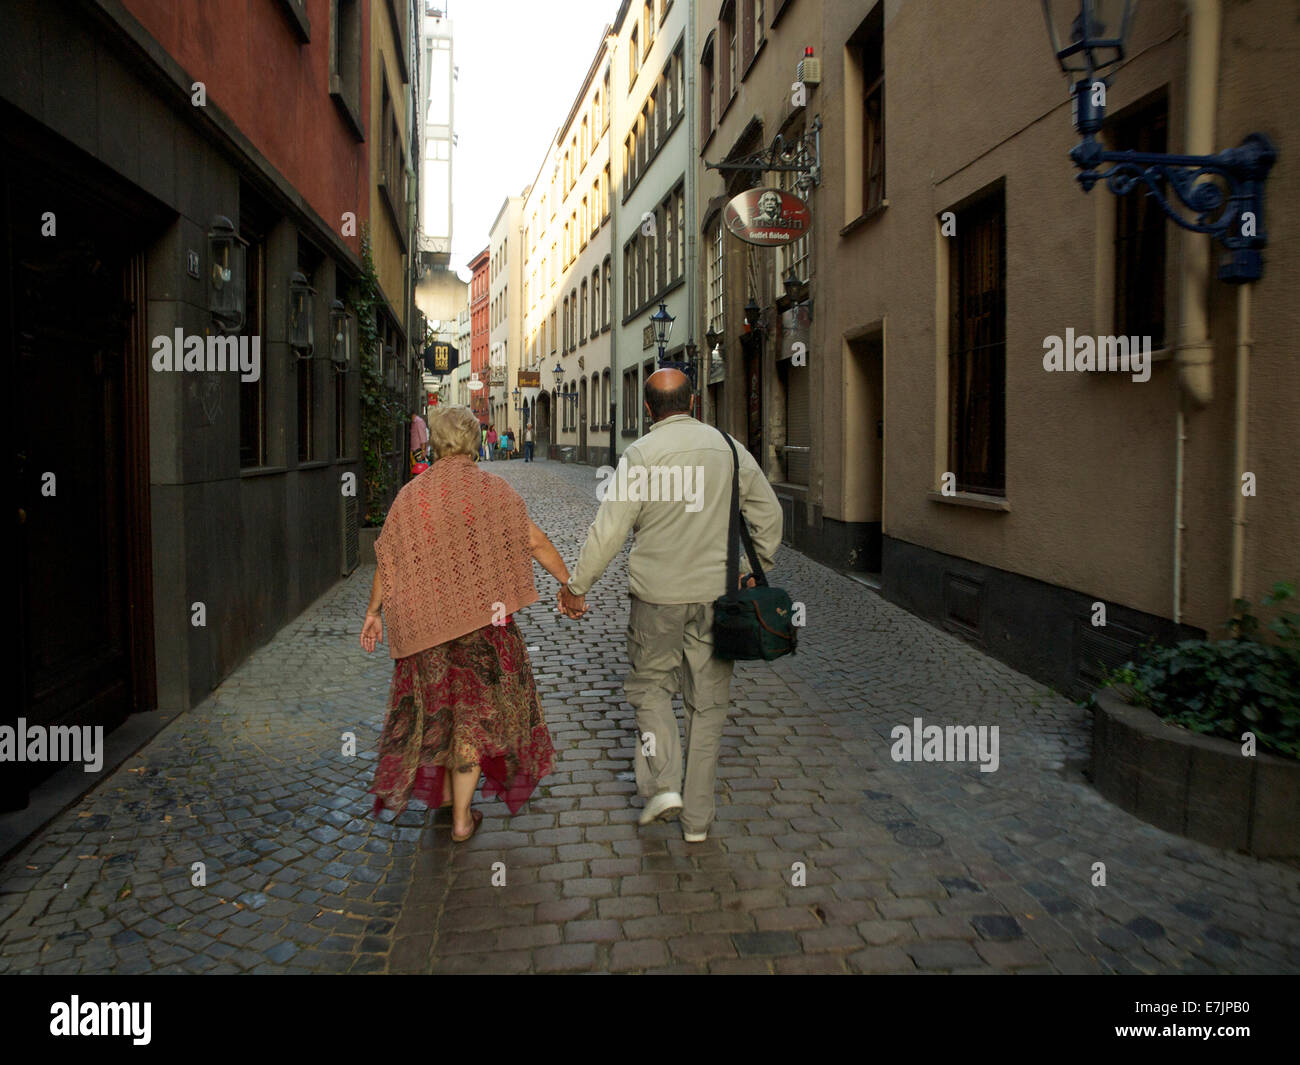 Older couple walking through the old streets of the historic city center of Cologne, Germany - Stock Image